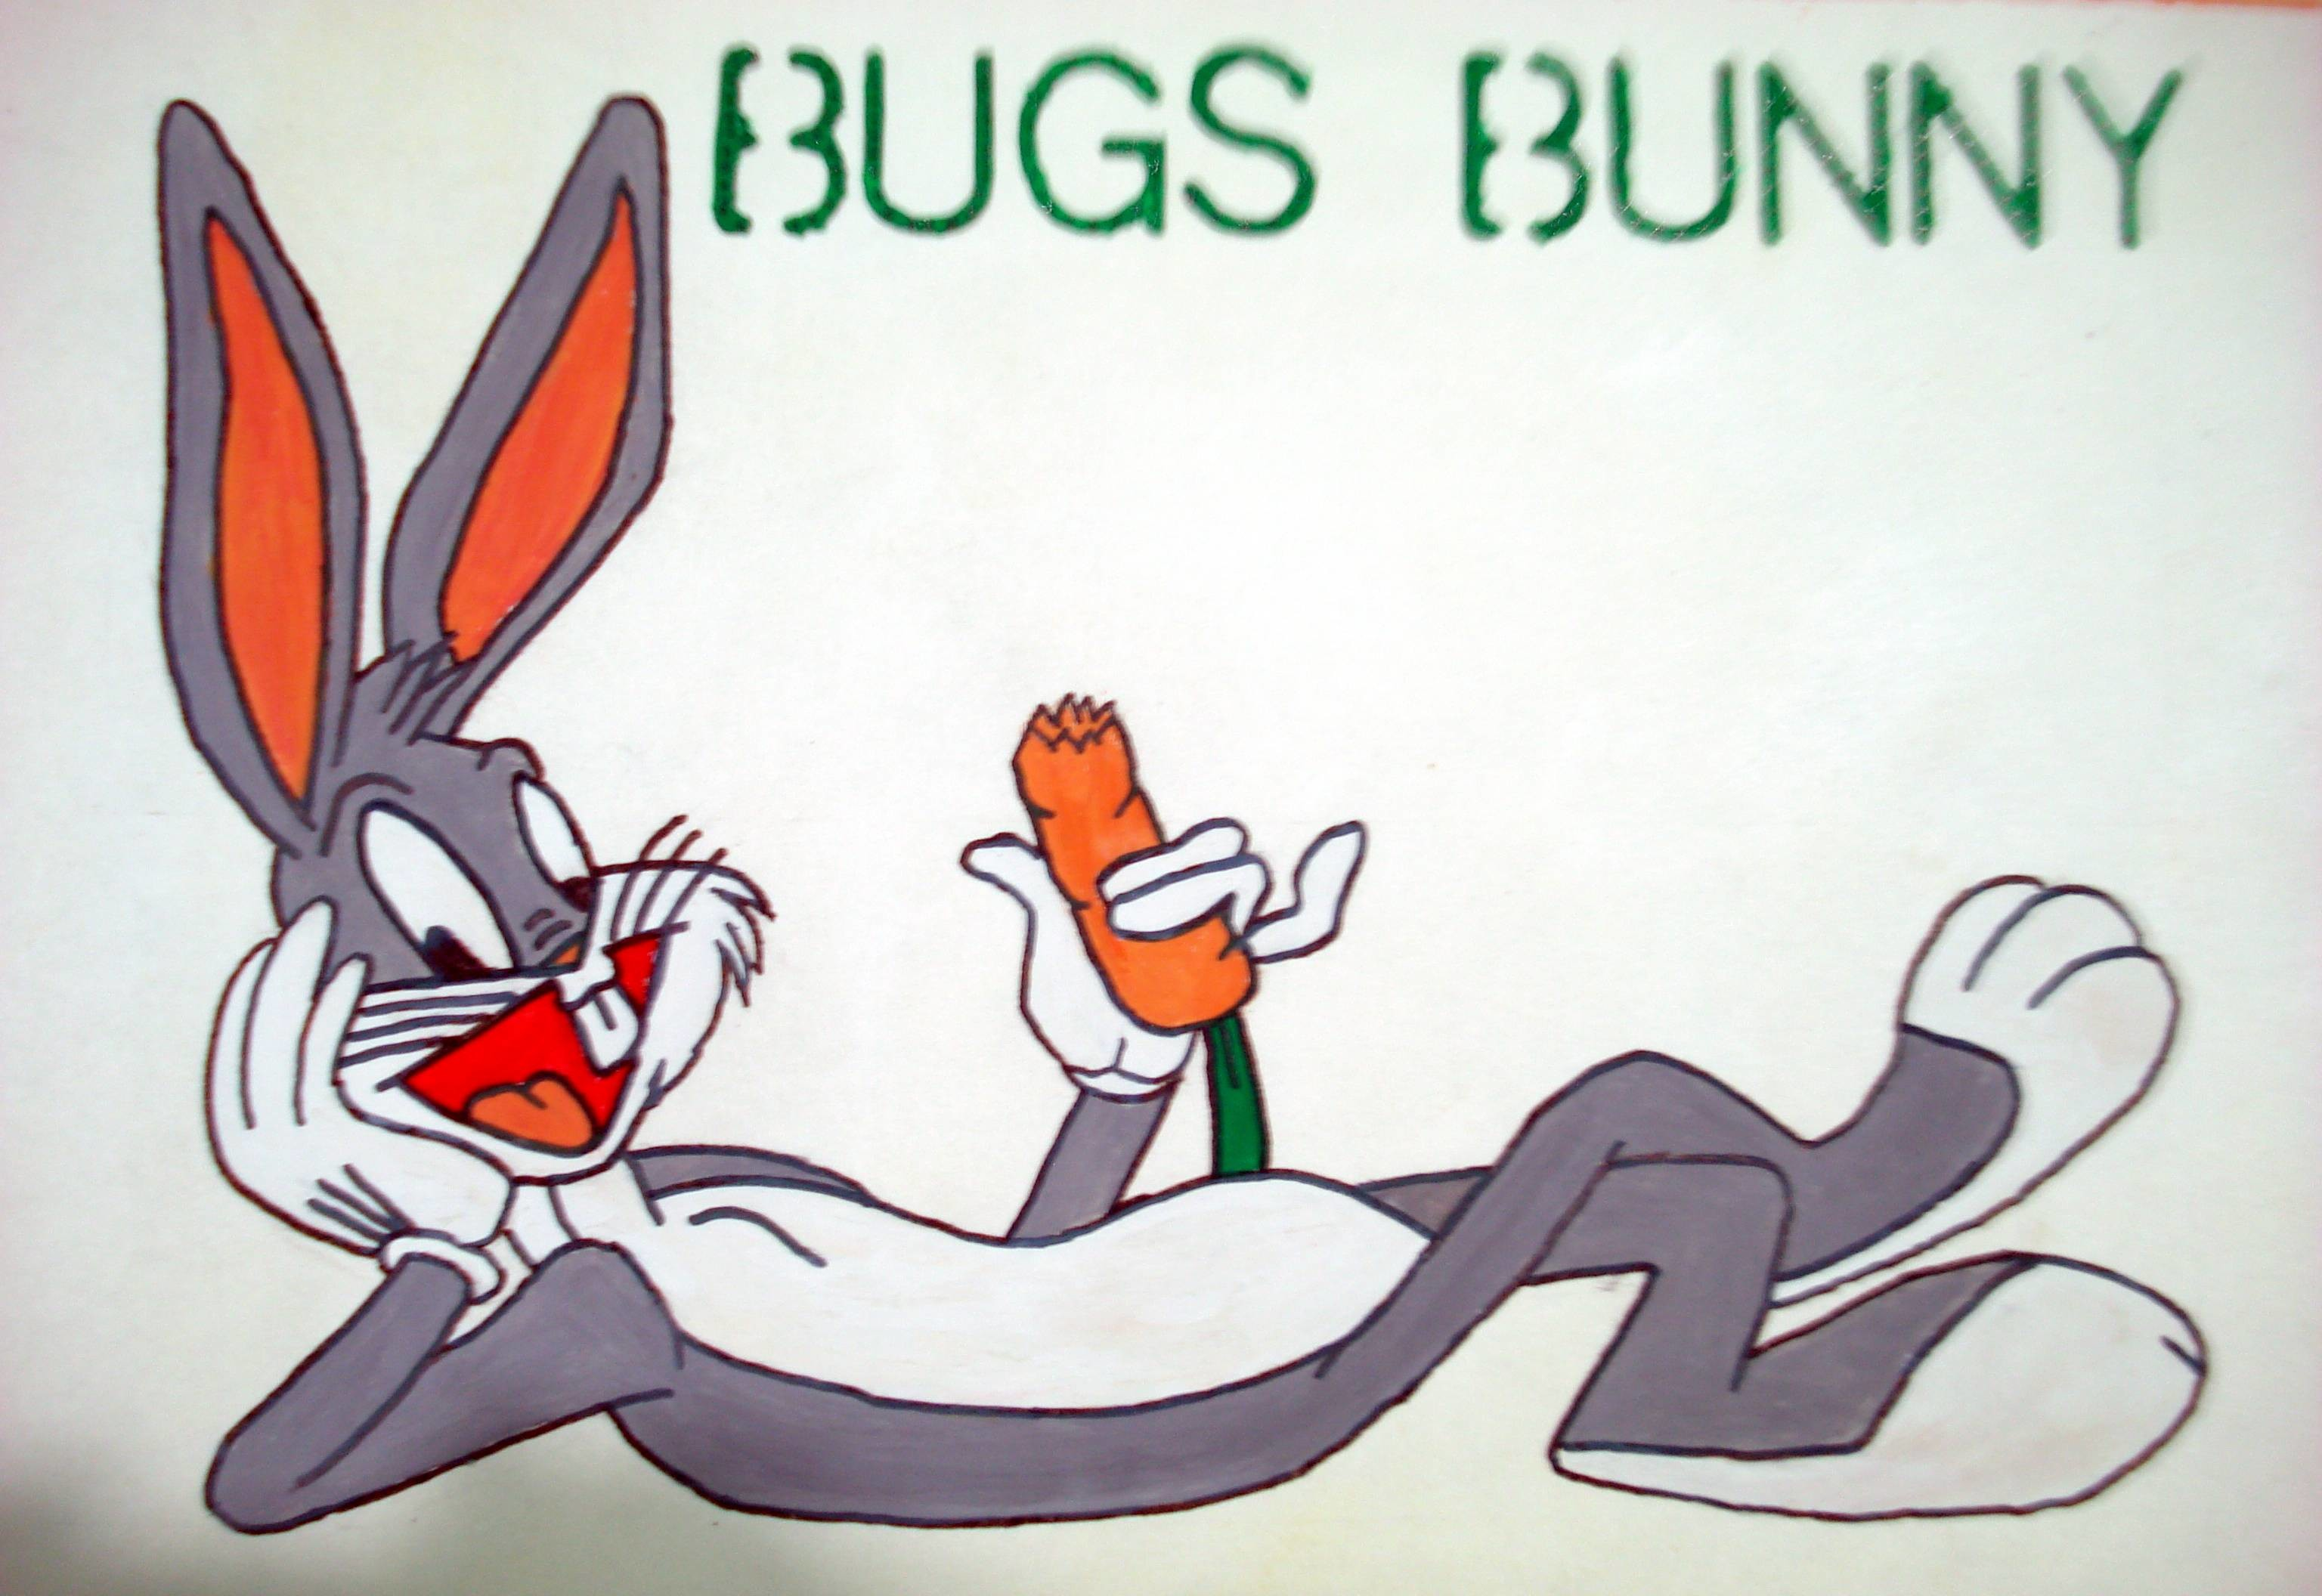 Res: 3072x2112, Bugs Bunny Wallpapers - HD Wallpapers Inn